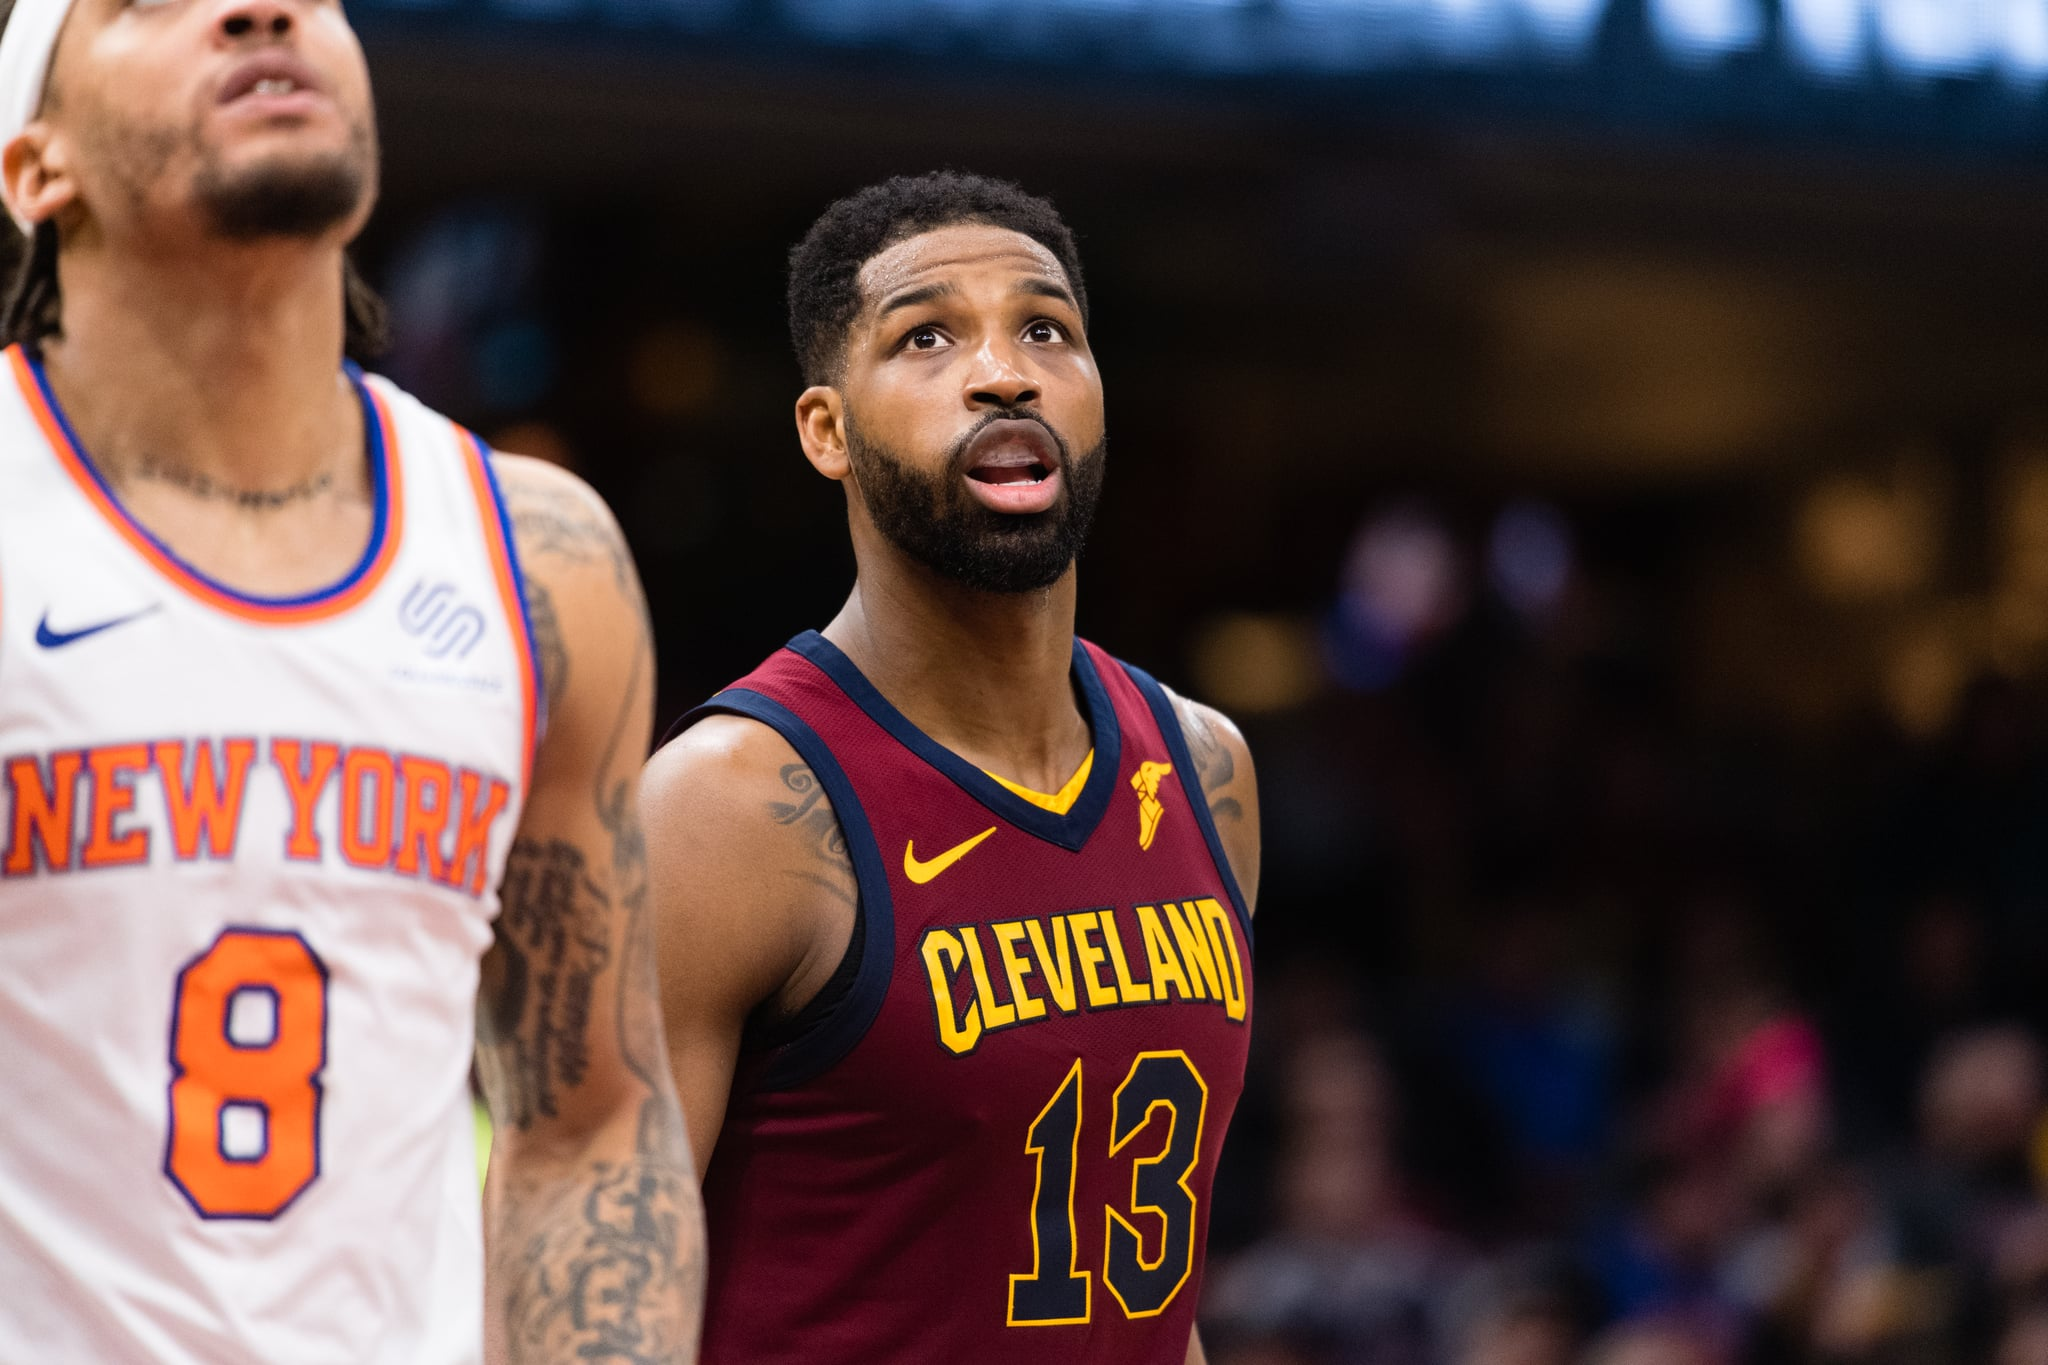 CLEVELAND, OH - APRIL 11: Tristan Thompson #13 of the Cleveland Cavaliers waits for a rebound after a free throw during the second half against the New York Knicks at Quicken Loans Arena on April 11, 2018 in Cleveland, Ohio. The Knicks defeated the Cavaliers 110-98. NOTE TO USER: User expressly acknowledges and agrees that, by downloading and or using this photograph, User is consenting to the terms and conditions of the Getty Images License Agreement. (Photo by Jason Miller/Getty Images)